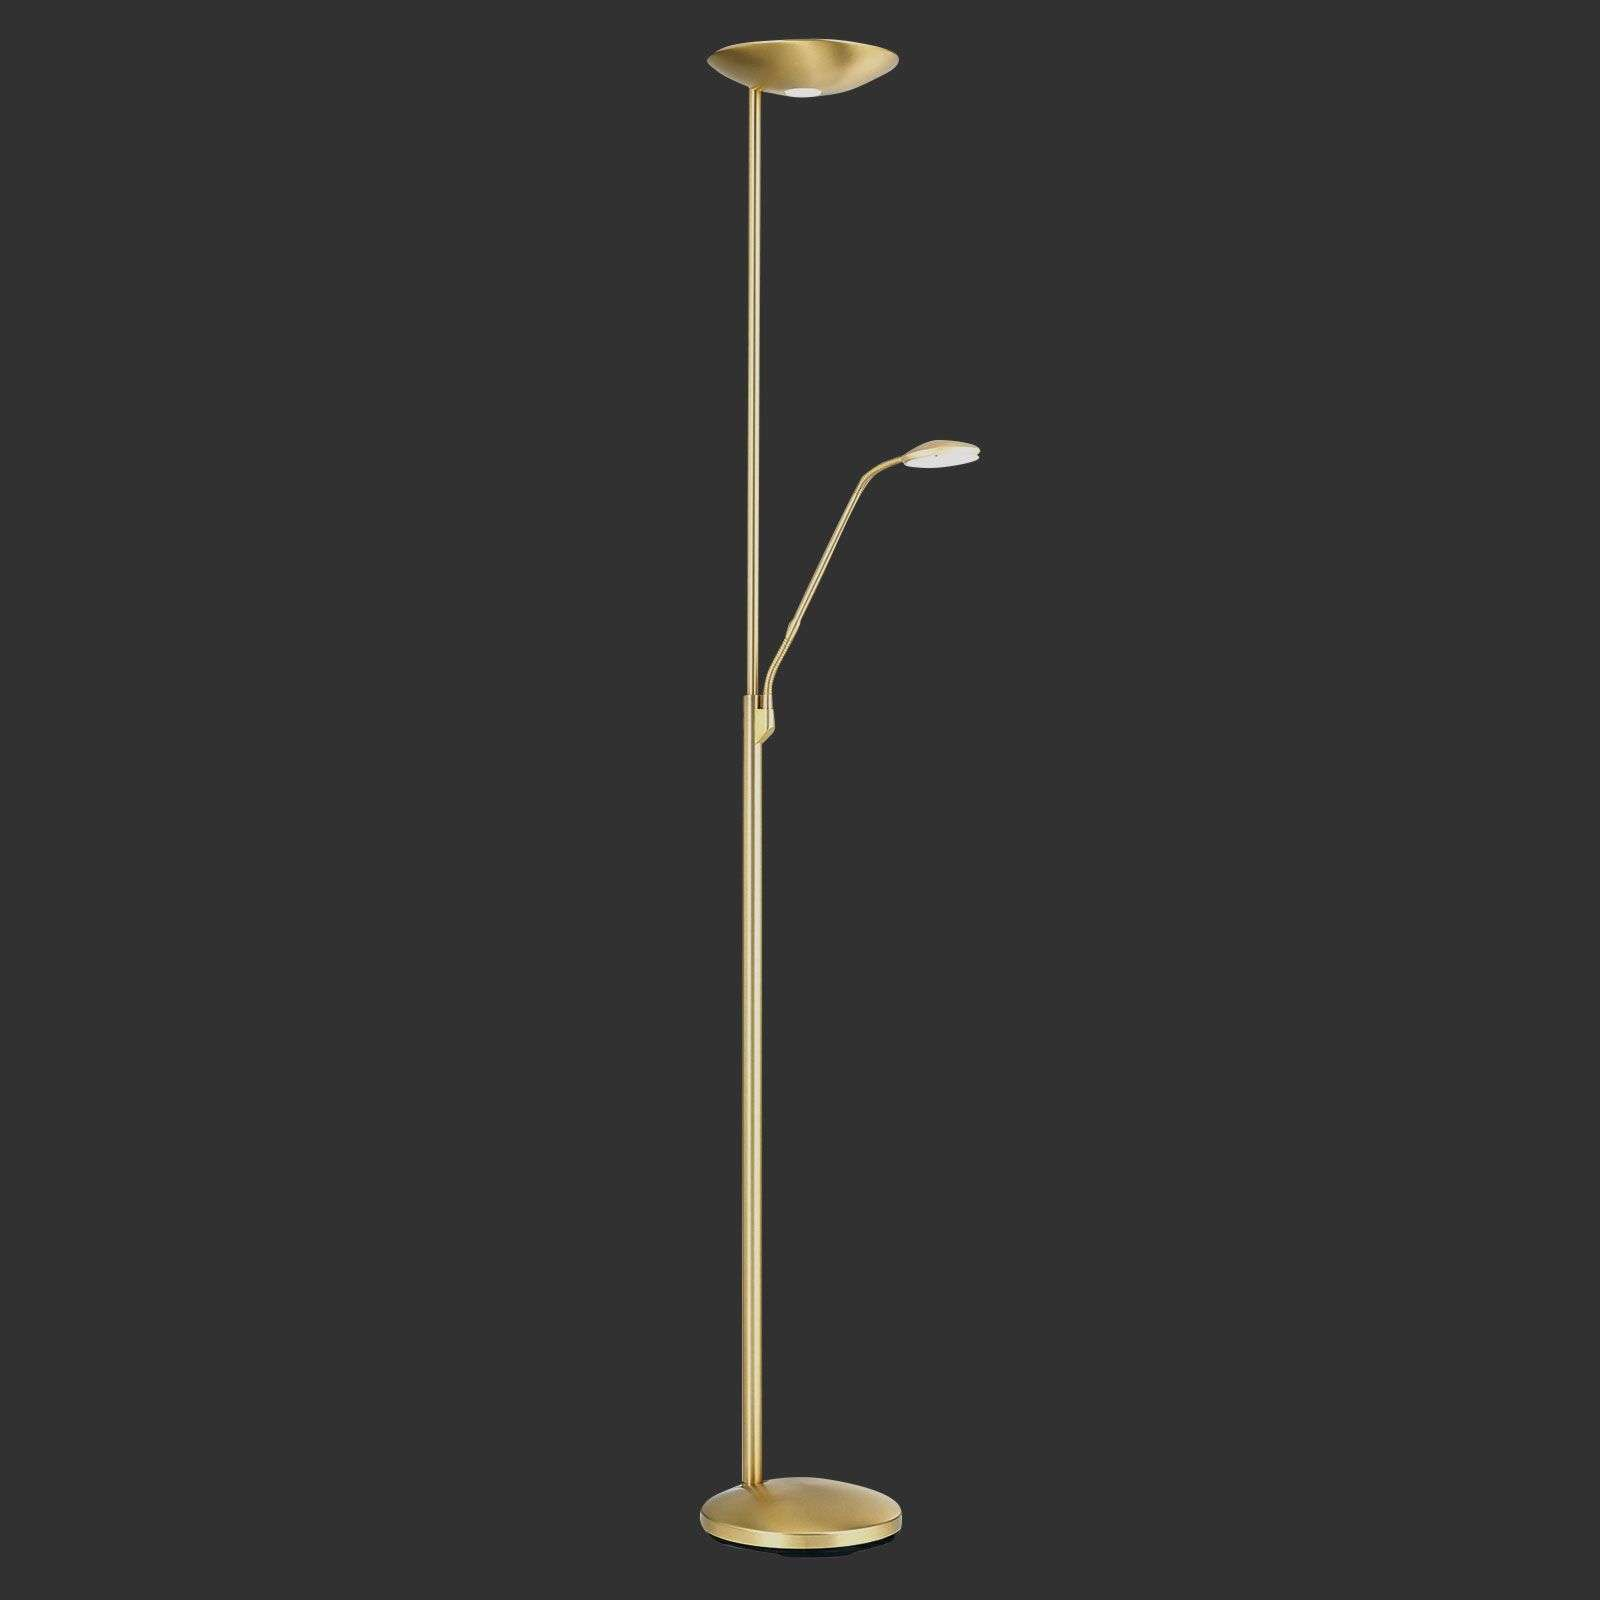 Lampadaire indirect LED Cobra avec liseuse laiton